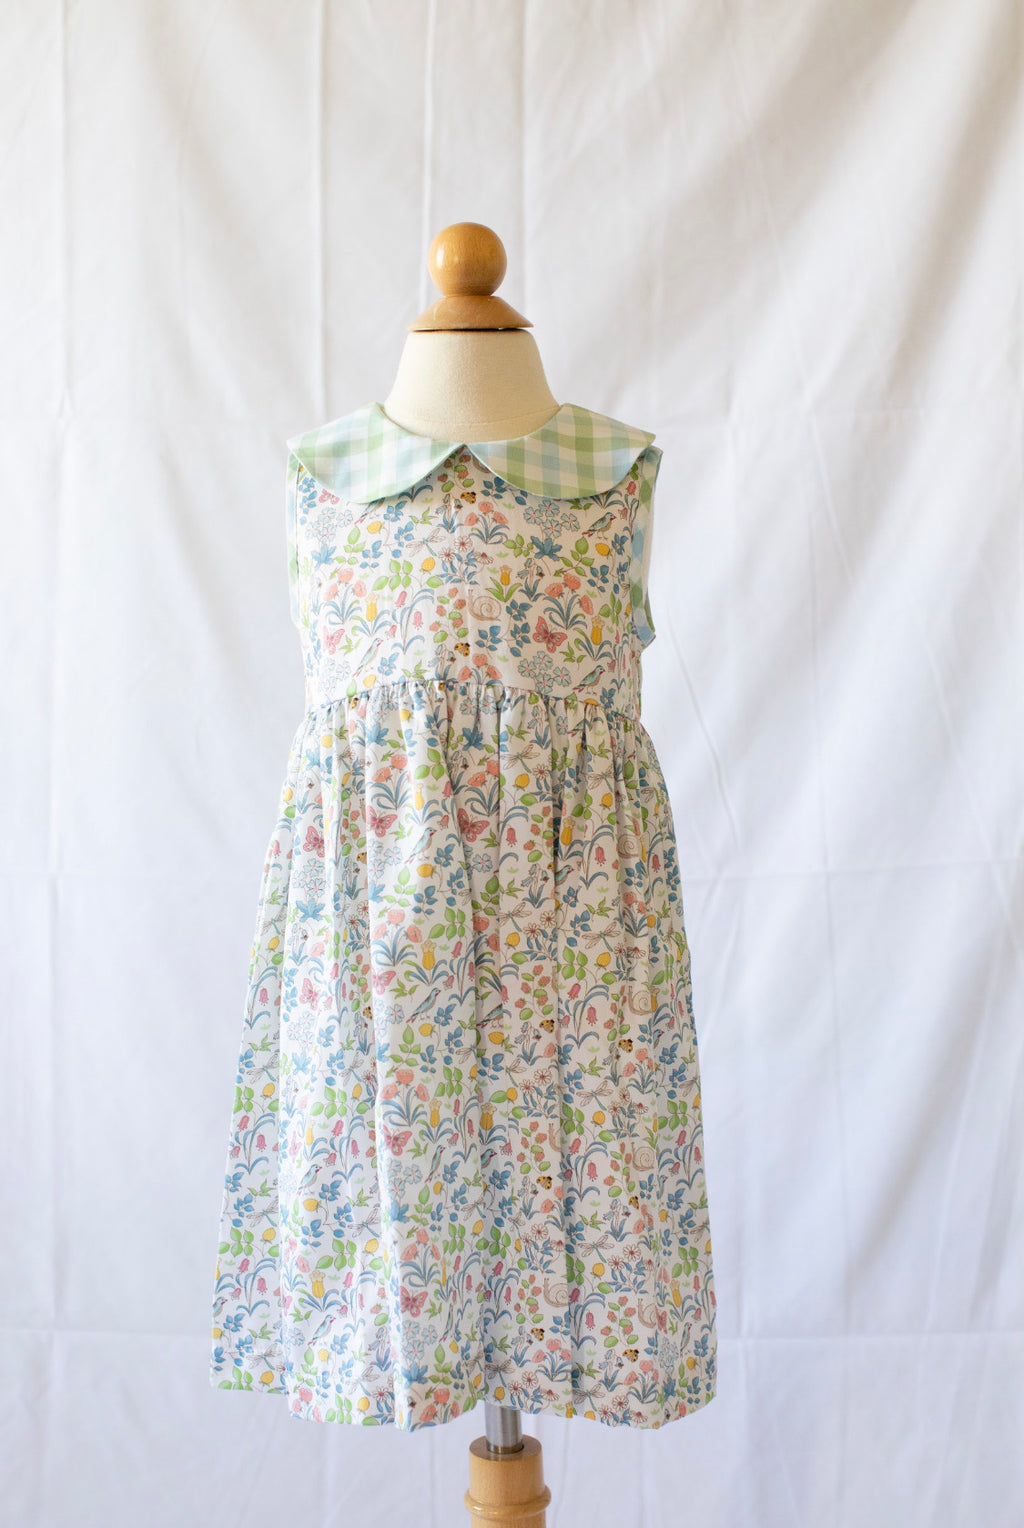 Sleeveless Liza Dress - Greenville Garden - Born Childrens Boutique